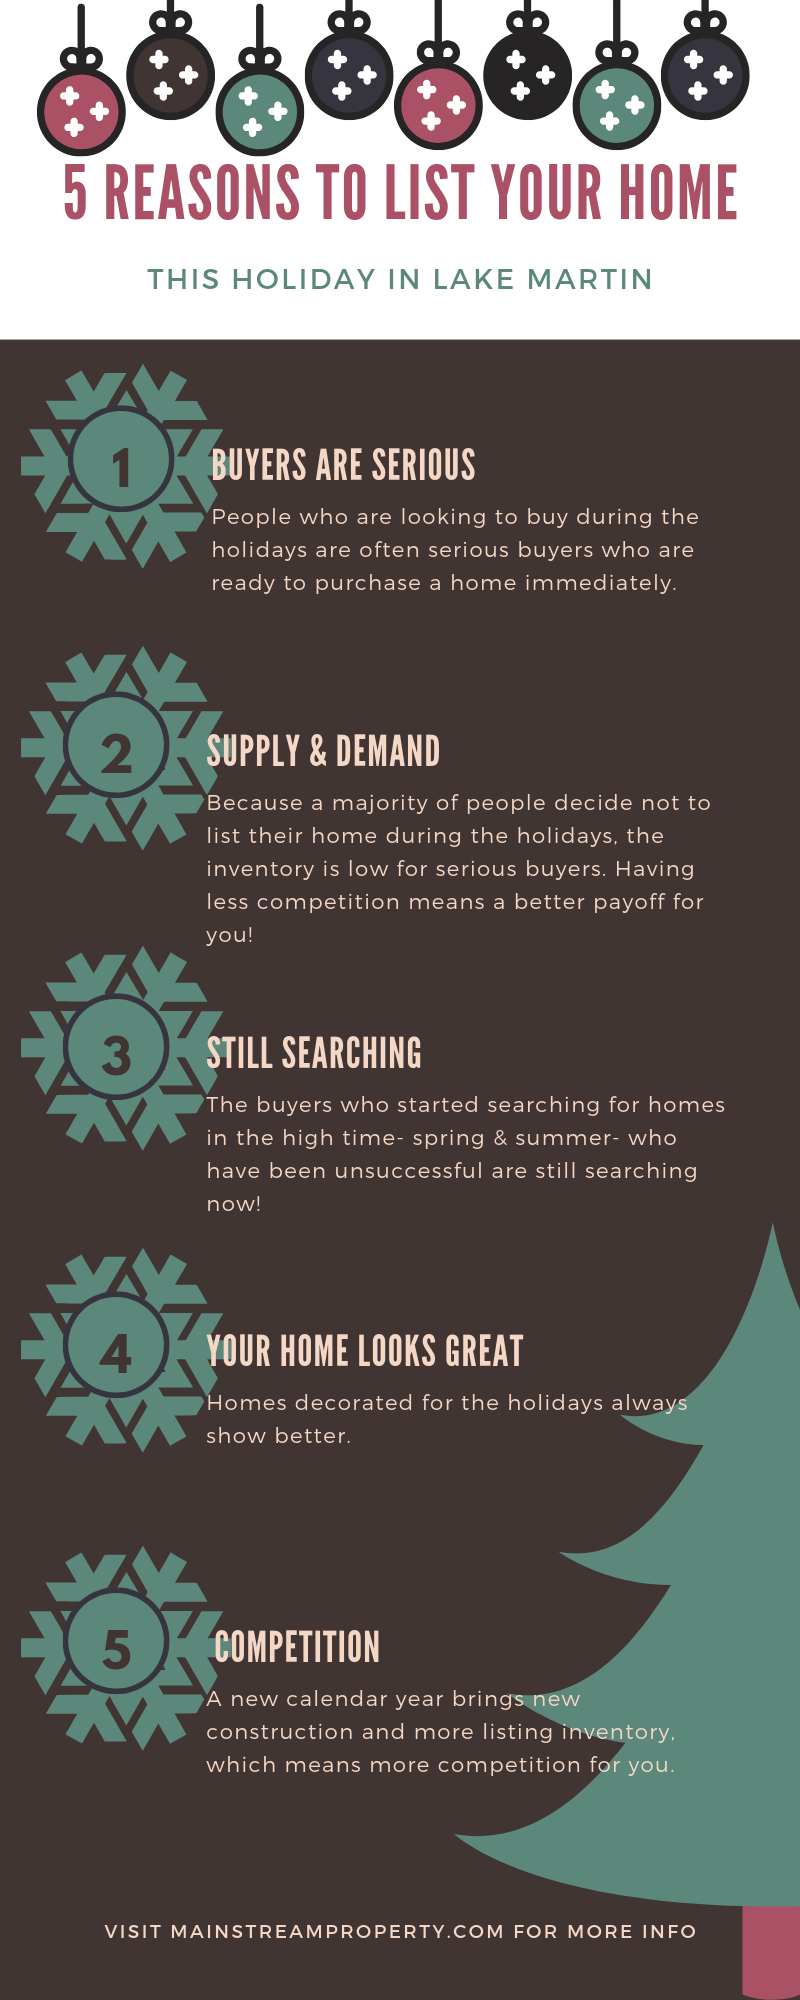 5 Reasons to List Your Lake Martin Home During the Holidays